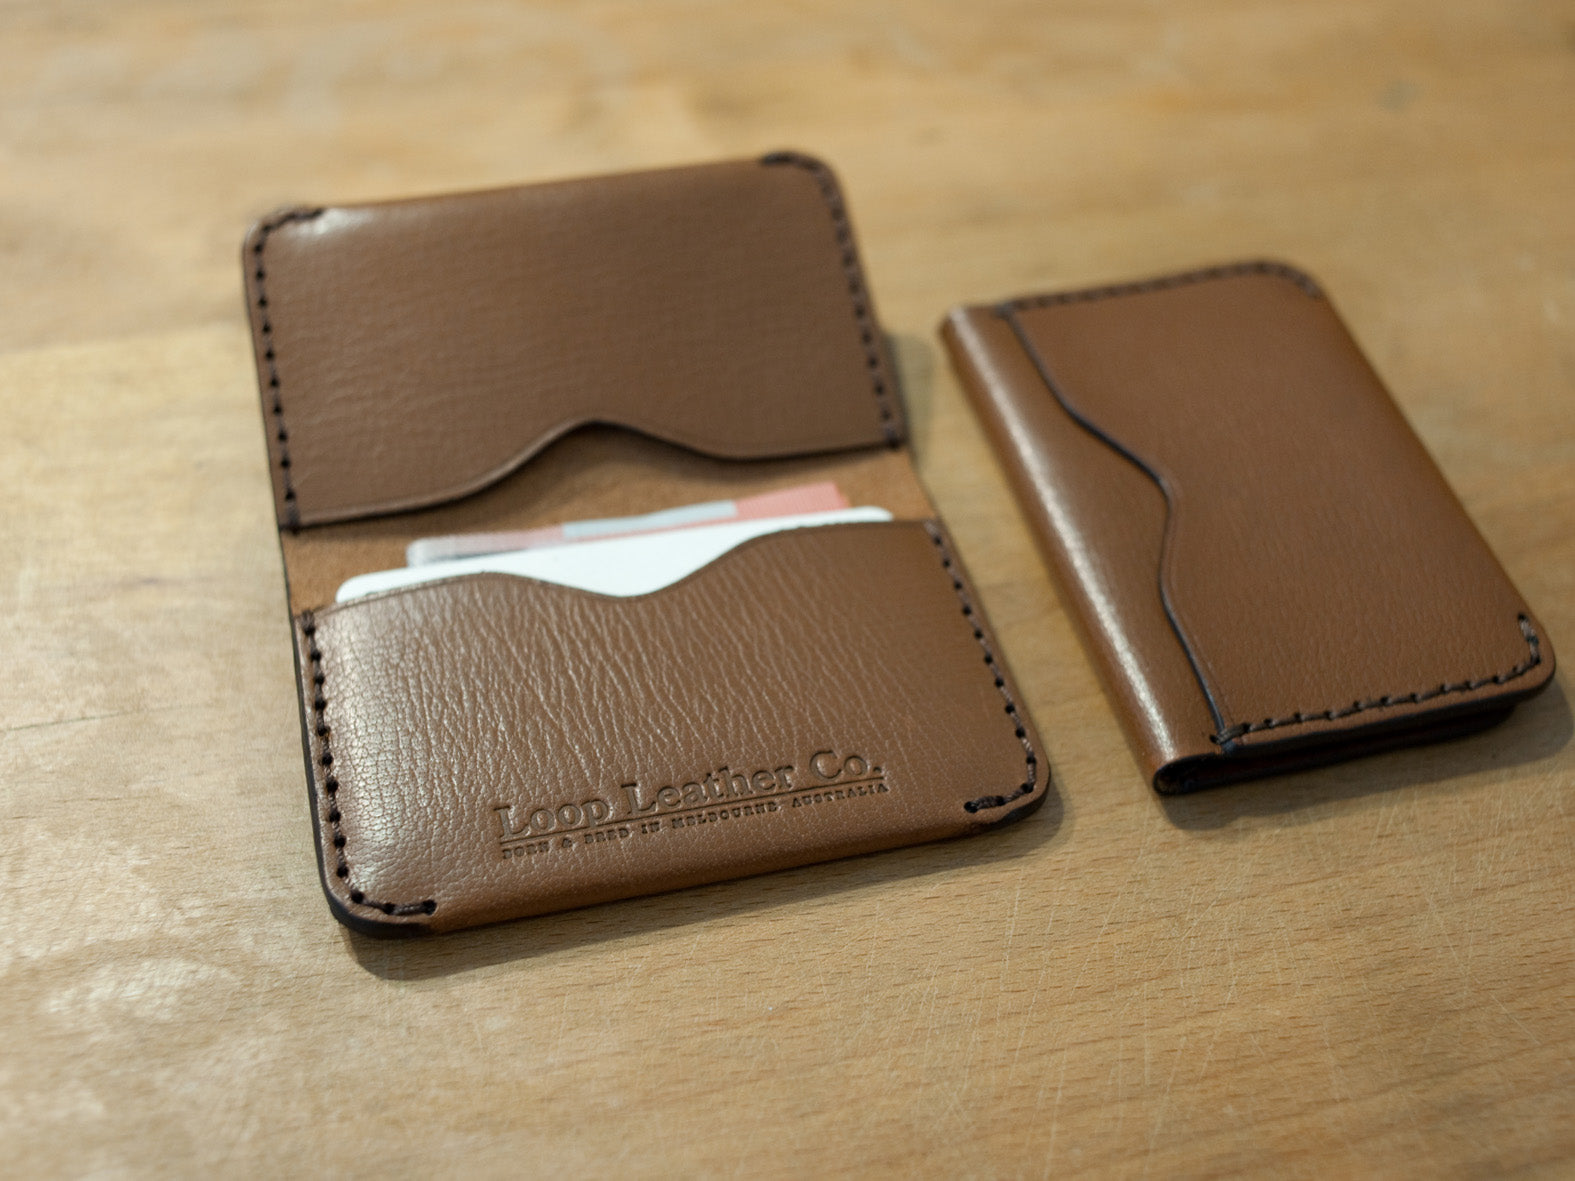 LOOP HANDMADE BI FOLD CARD HOLDER - TAN